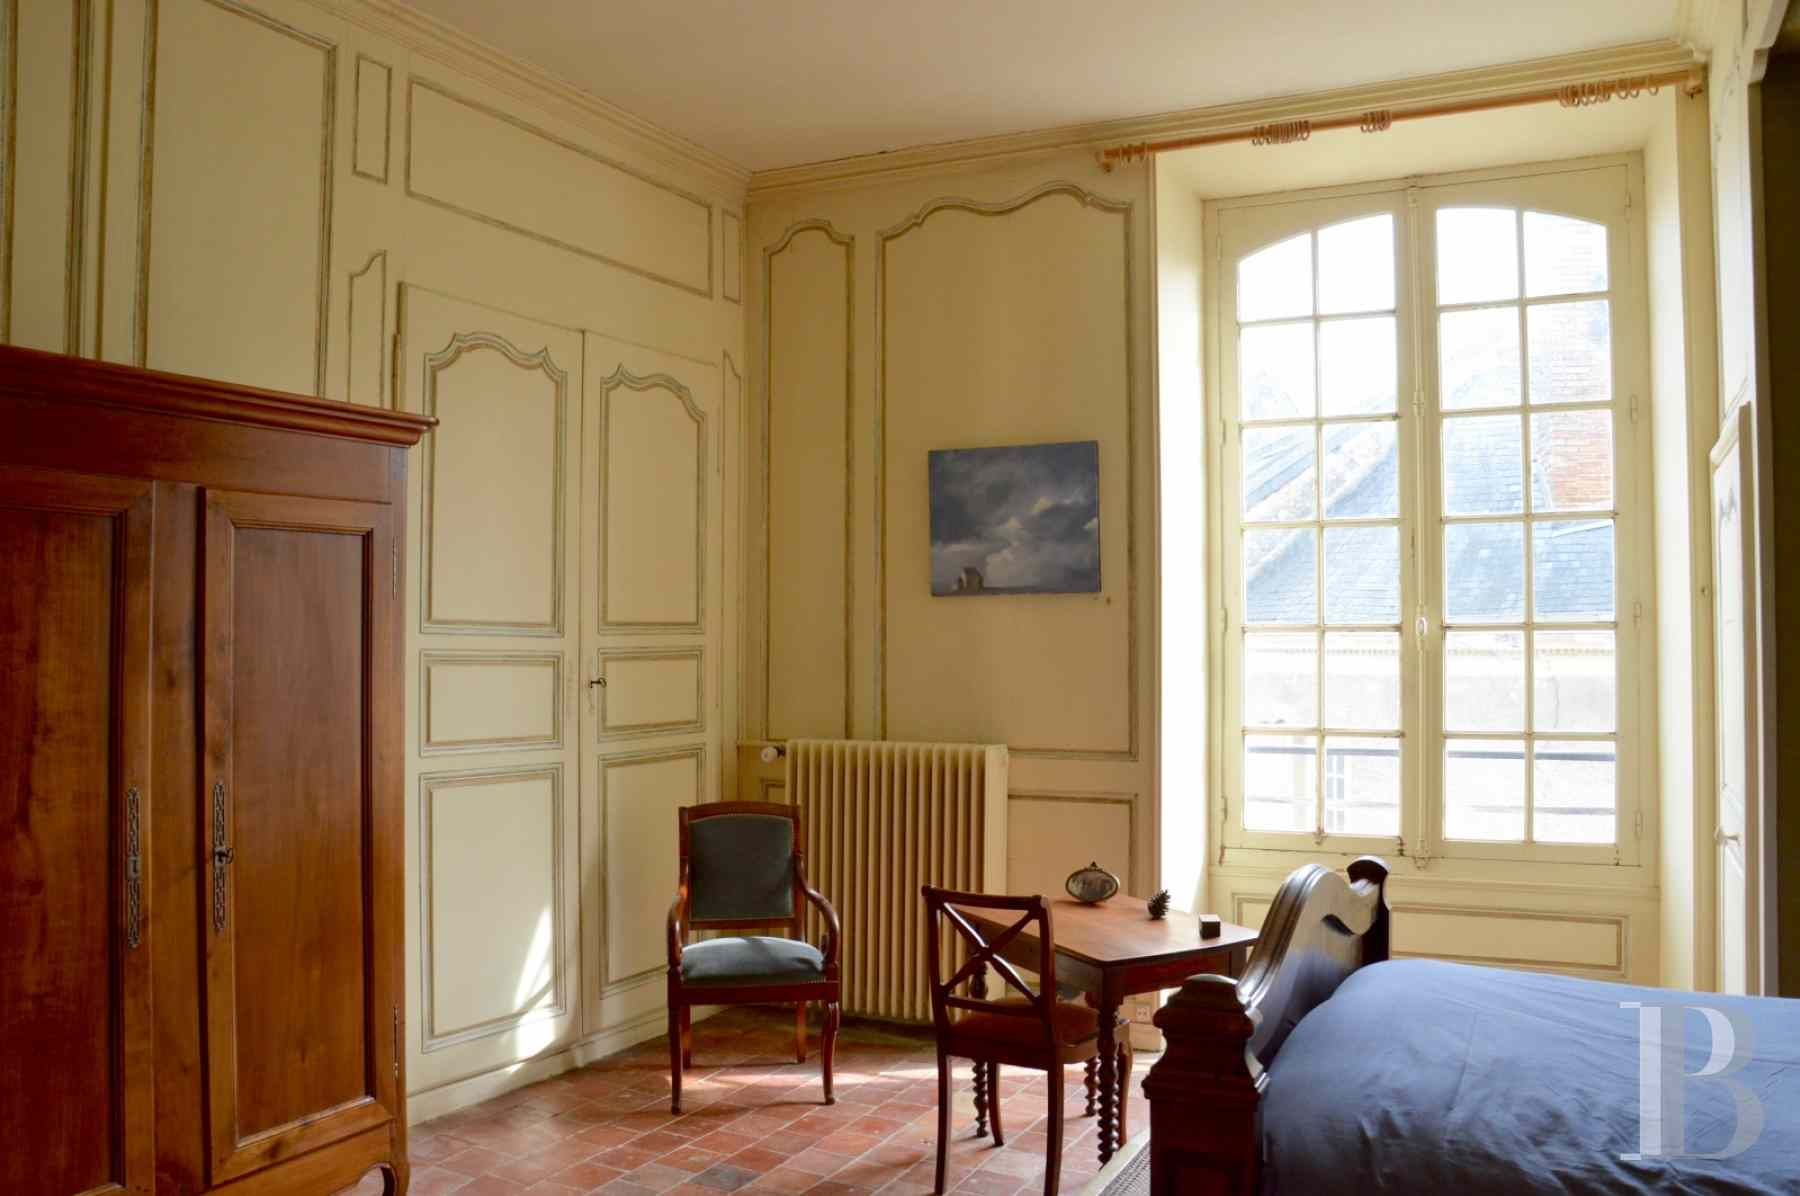 mansion houses for sale France pays de loire 18th century - 11 zoom